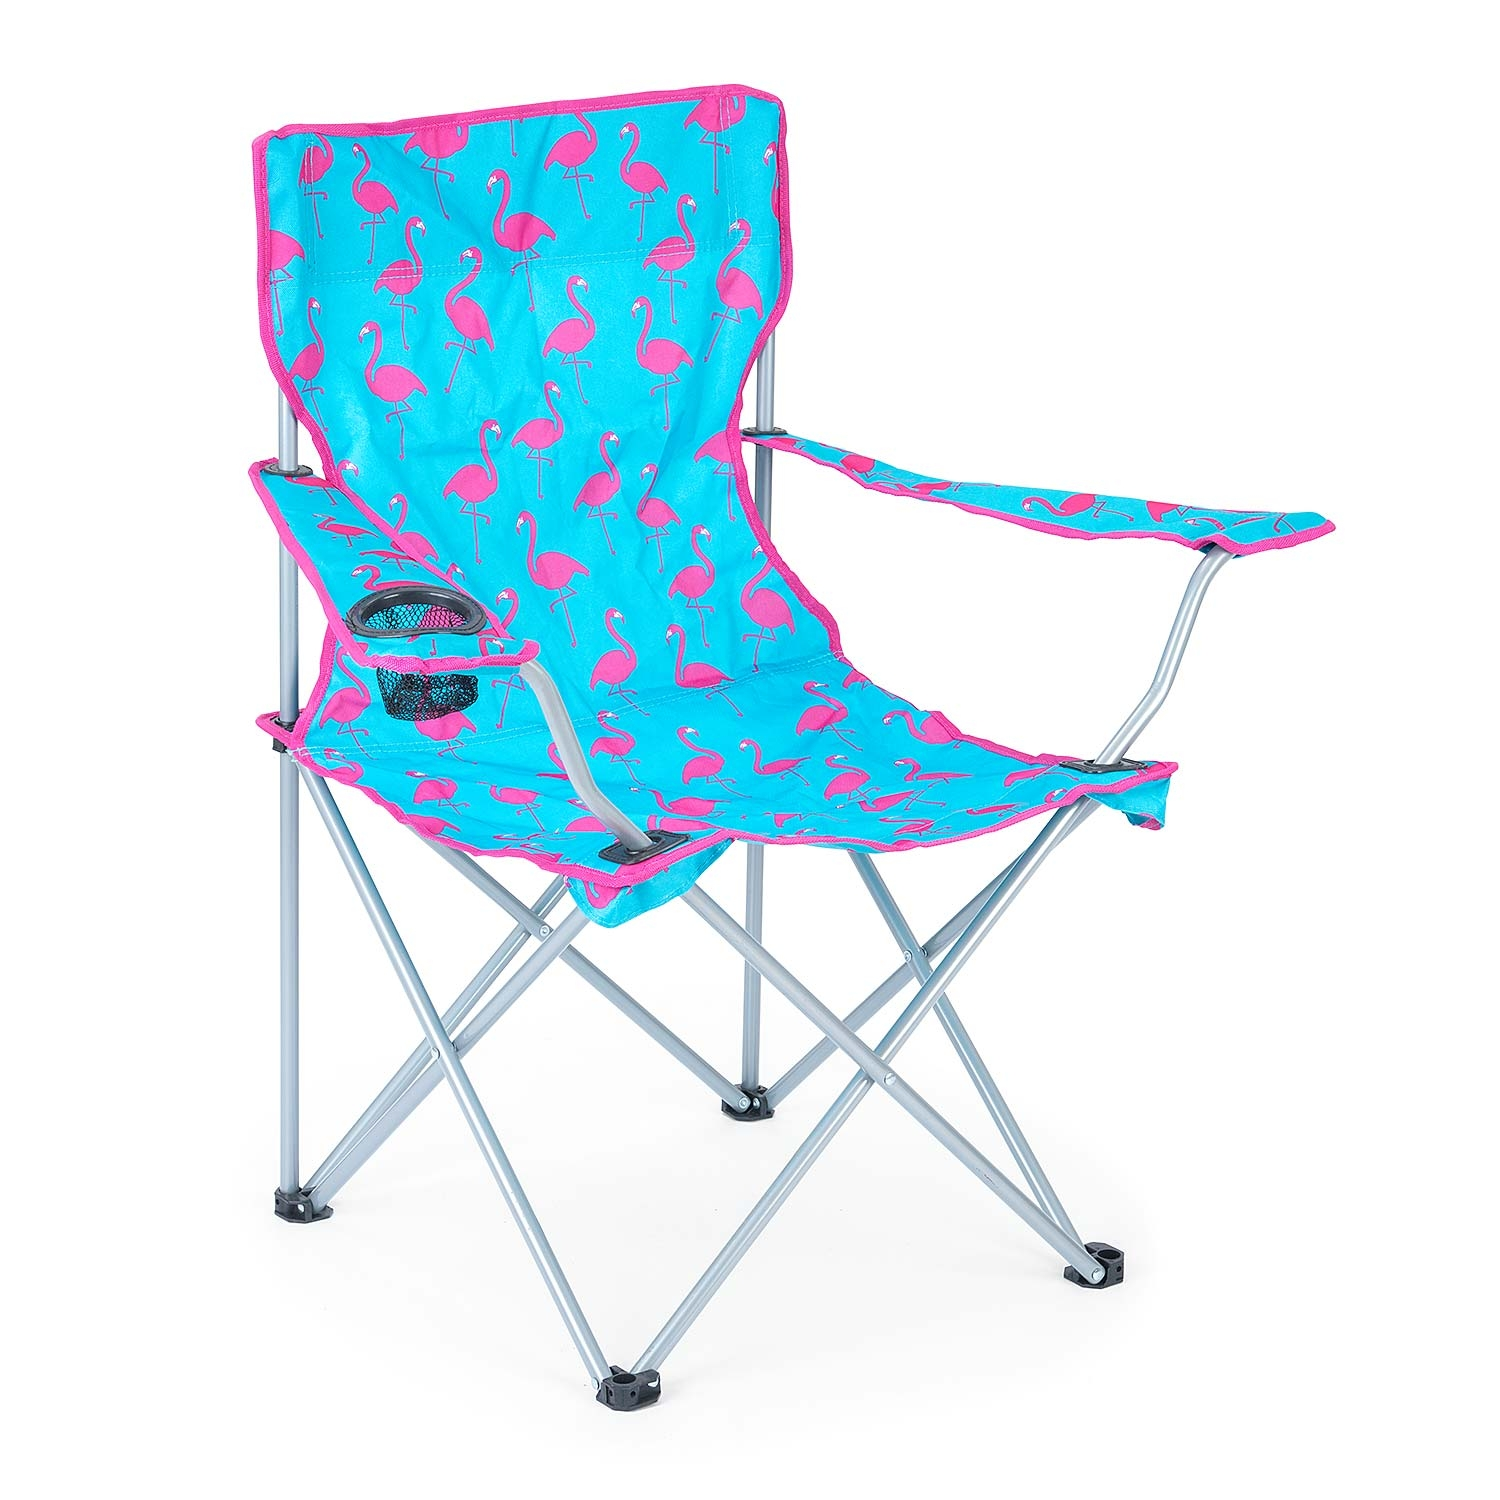 Flamingo Camping Chair - Blue